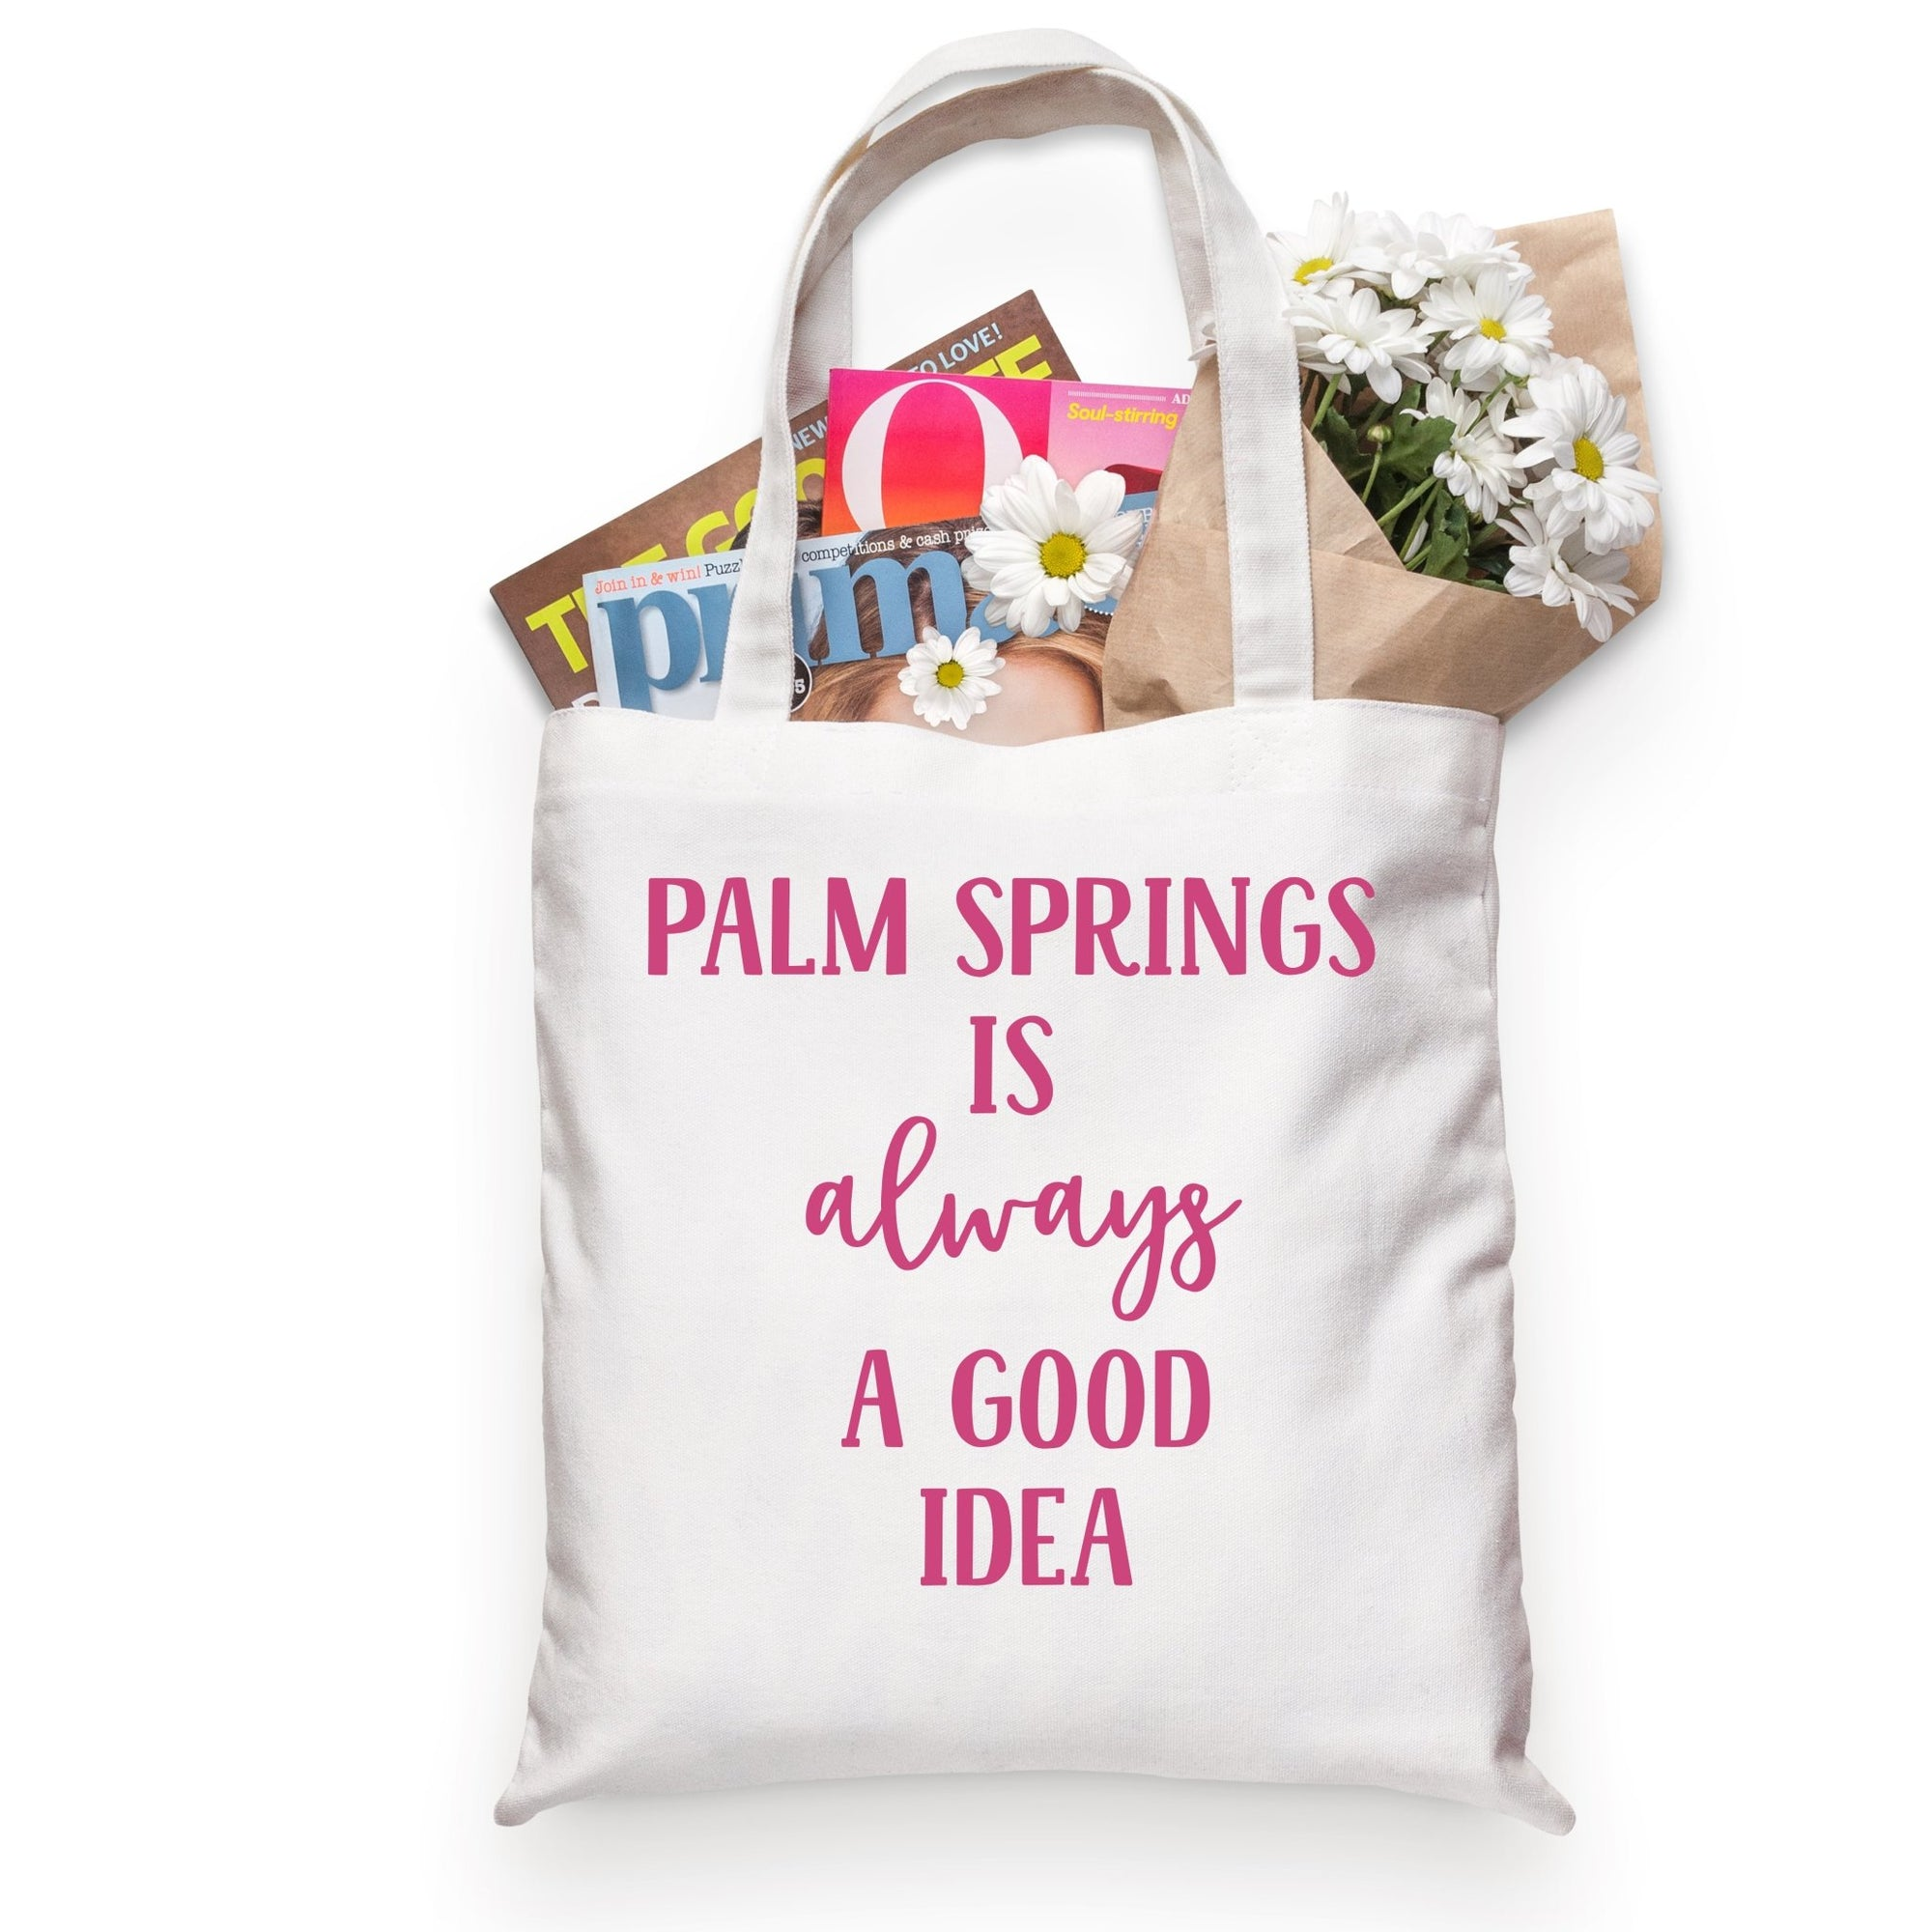 Palm Springs Is Always A Good Idea Tote - Sprinkled With Pink #bachelorette #custom #gifts